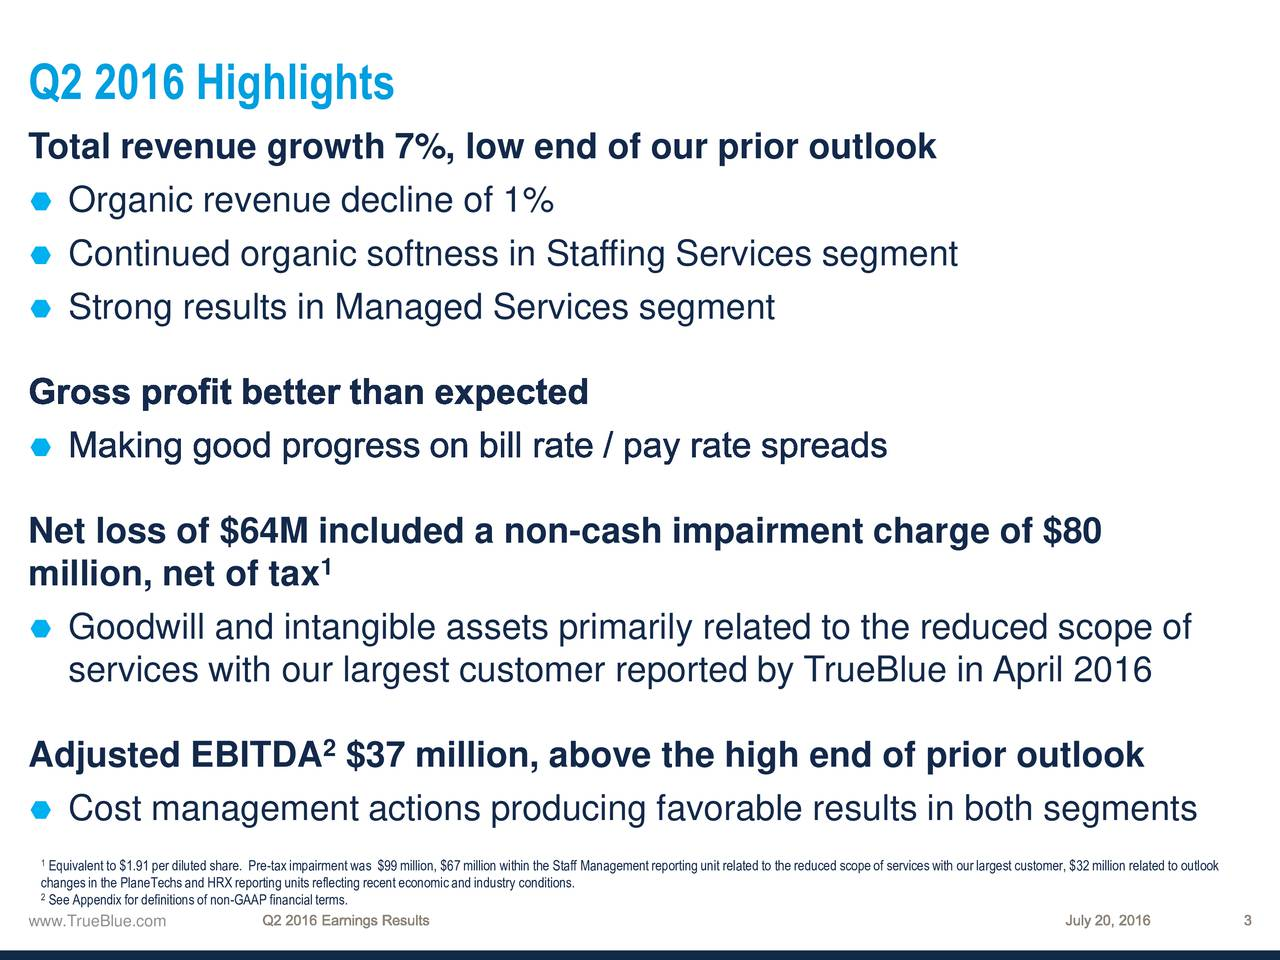 Total revenue growth 7%, low end of our prior outlook Organic revenue decline of 1% Continued organic softness in Staffing Services segment Strong results in Managed Services segment Net loss of $64M included a non-cash impairment charge of $80 1 million, net of tax Goodwill and intangible assets primarily related to the reduced scope of services with our largest customer reported by TrueBlue in April 2016 Adjusted EBITDA $37 million, above the high end of prior outlook Cost management actions producing favorable results in both segments changesin the PlaneTechsand HRX reporting units reflecting recent economicand industry conditions.aff Managementreporting unit related to the reduced scopeof services with ourlargest customer, $32 million related to outlook See Appendixfor definitions of non-GAAP financialterms. www.TrueBlue.com